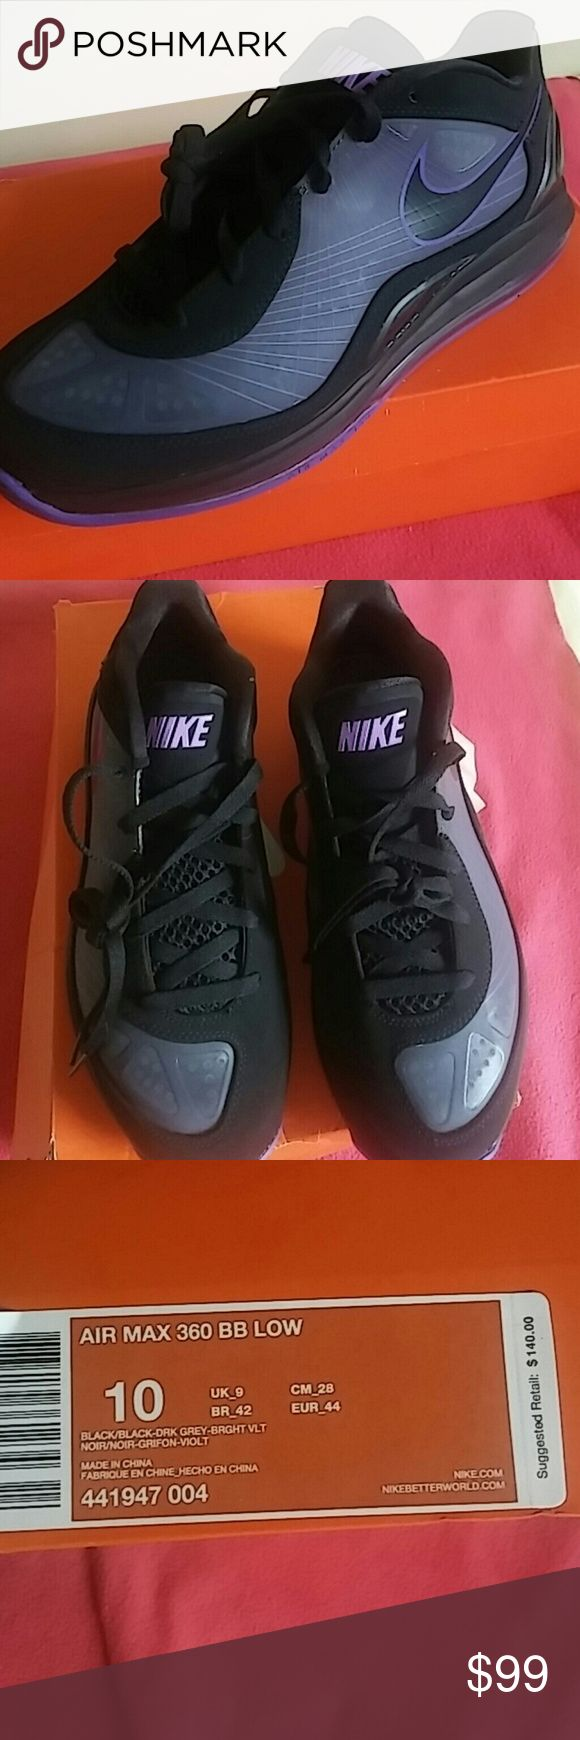 Brand New Air Max 360 Bright Vlt Dark Grey Brand New in original box used as a floor display in Nike store...Colors care violet, grey, black..beautiful combo. Nike Shoes Sneakers